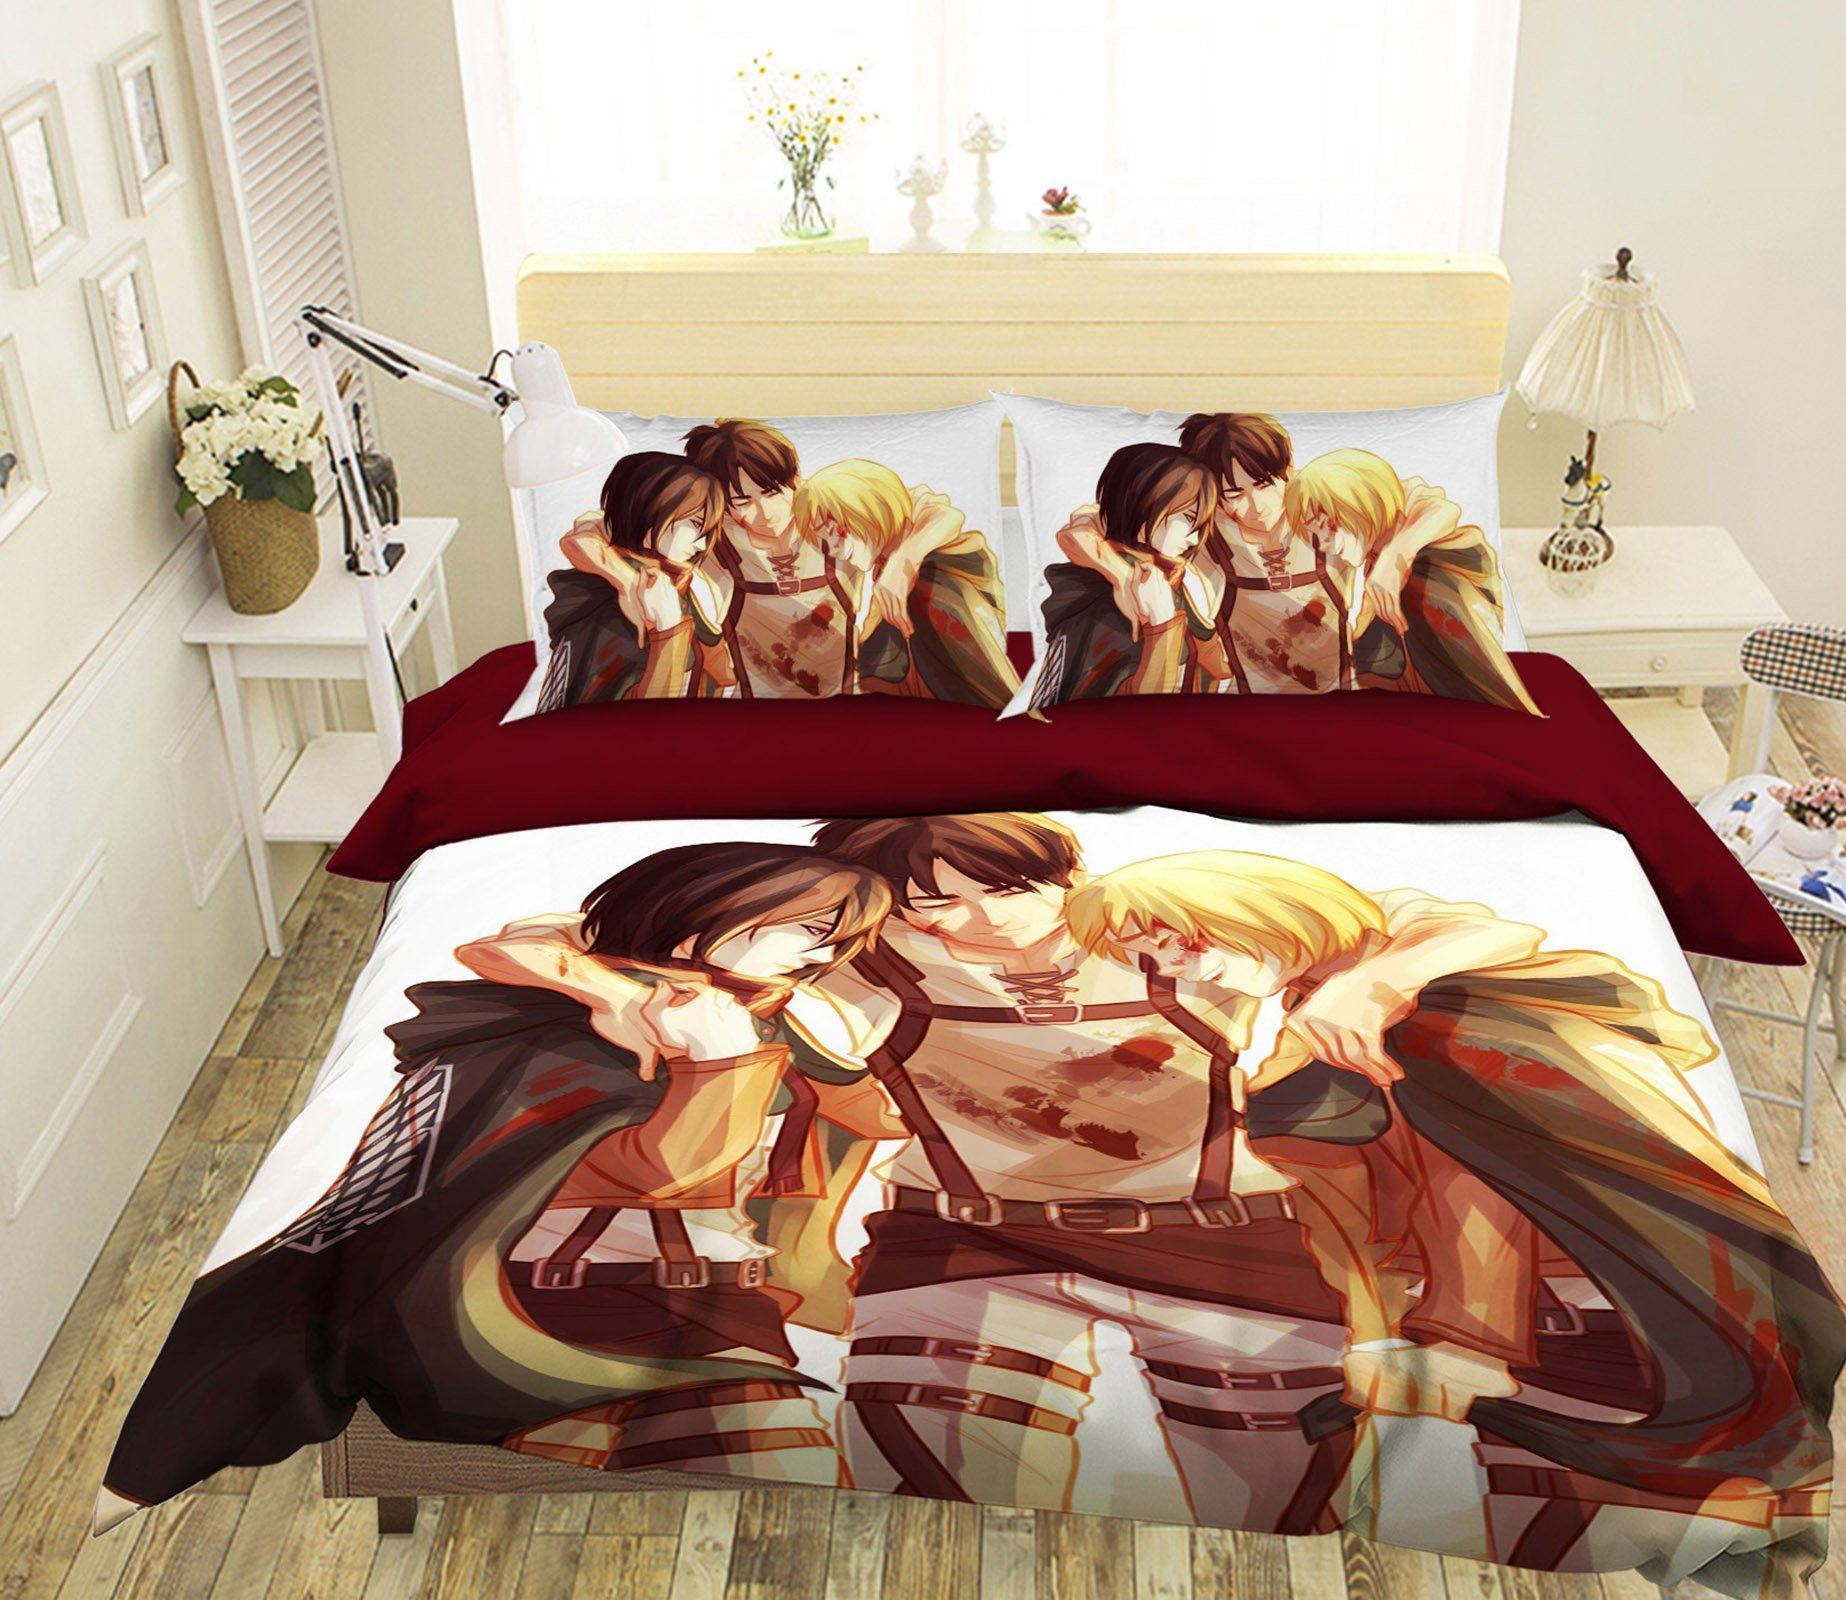 3D Attack On Titan 02 Anime Bed Pillowcases Quilt Quiet Covers AJ Creativity Home